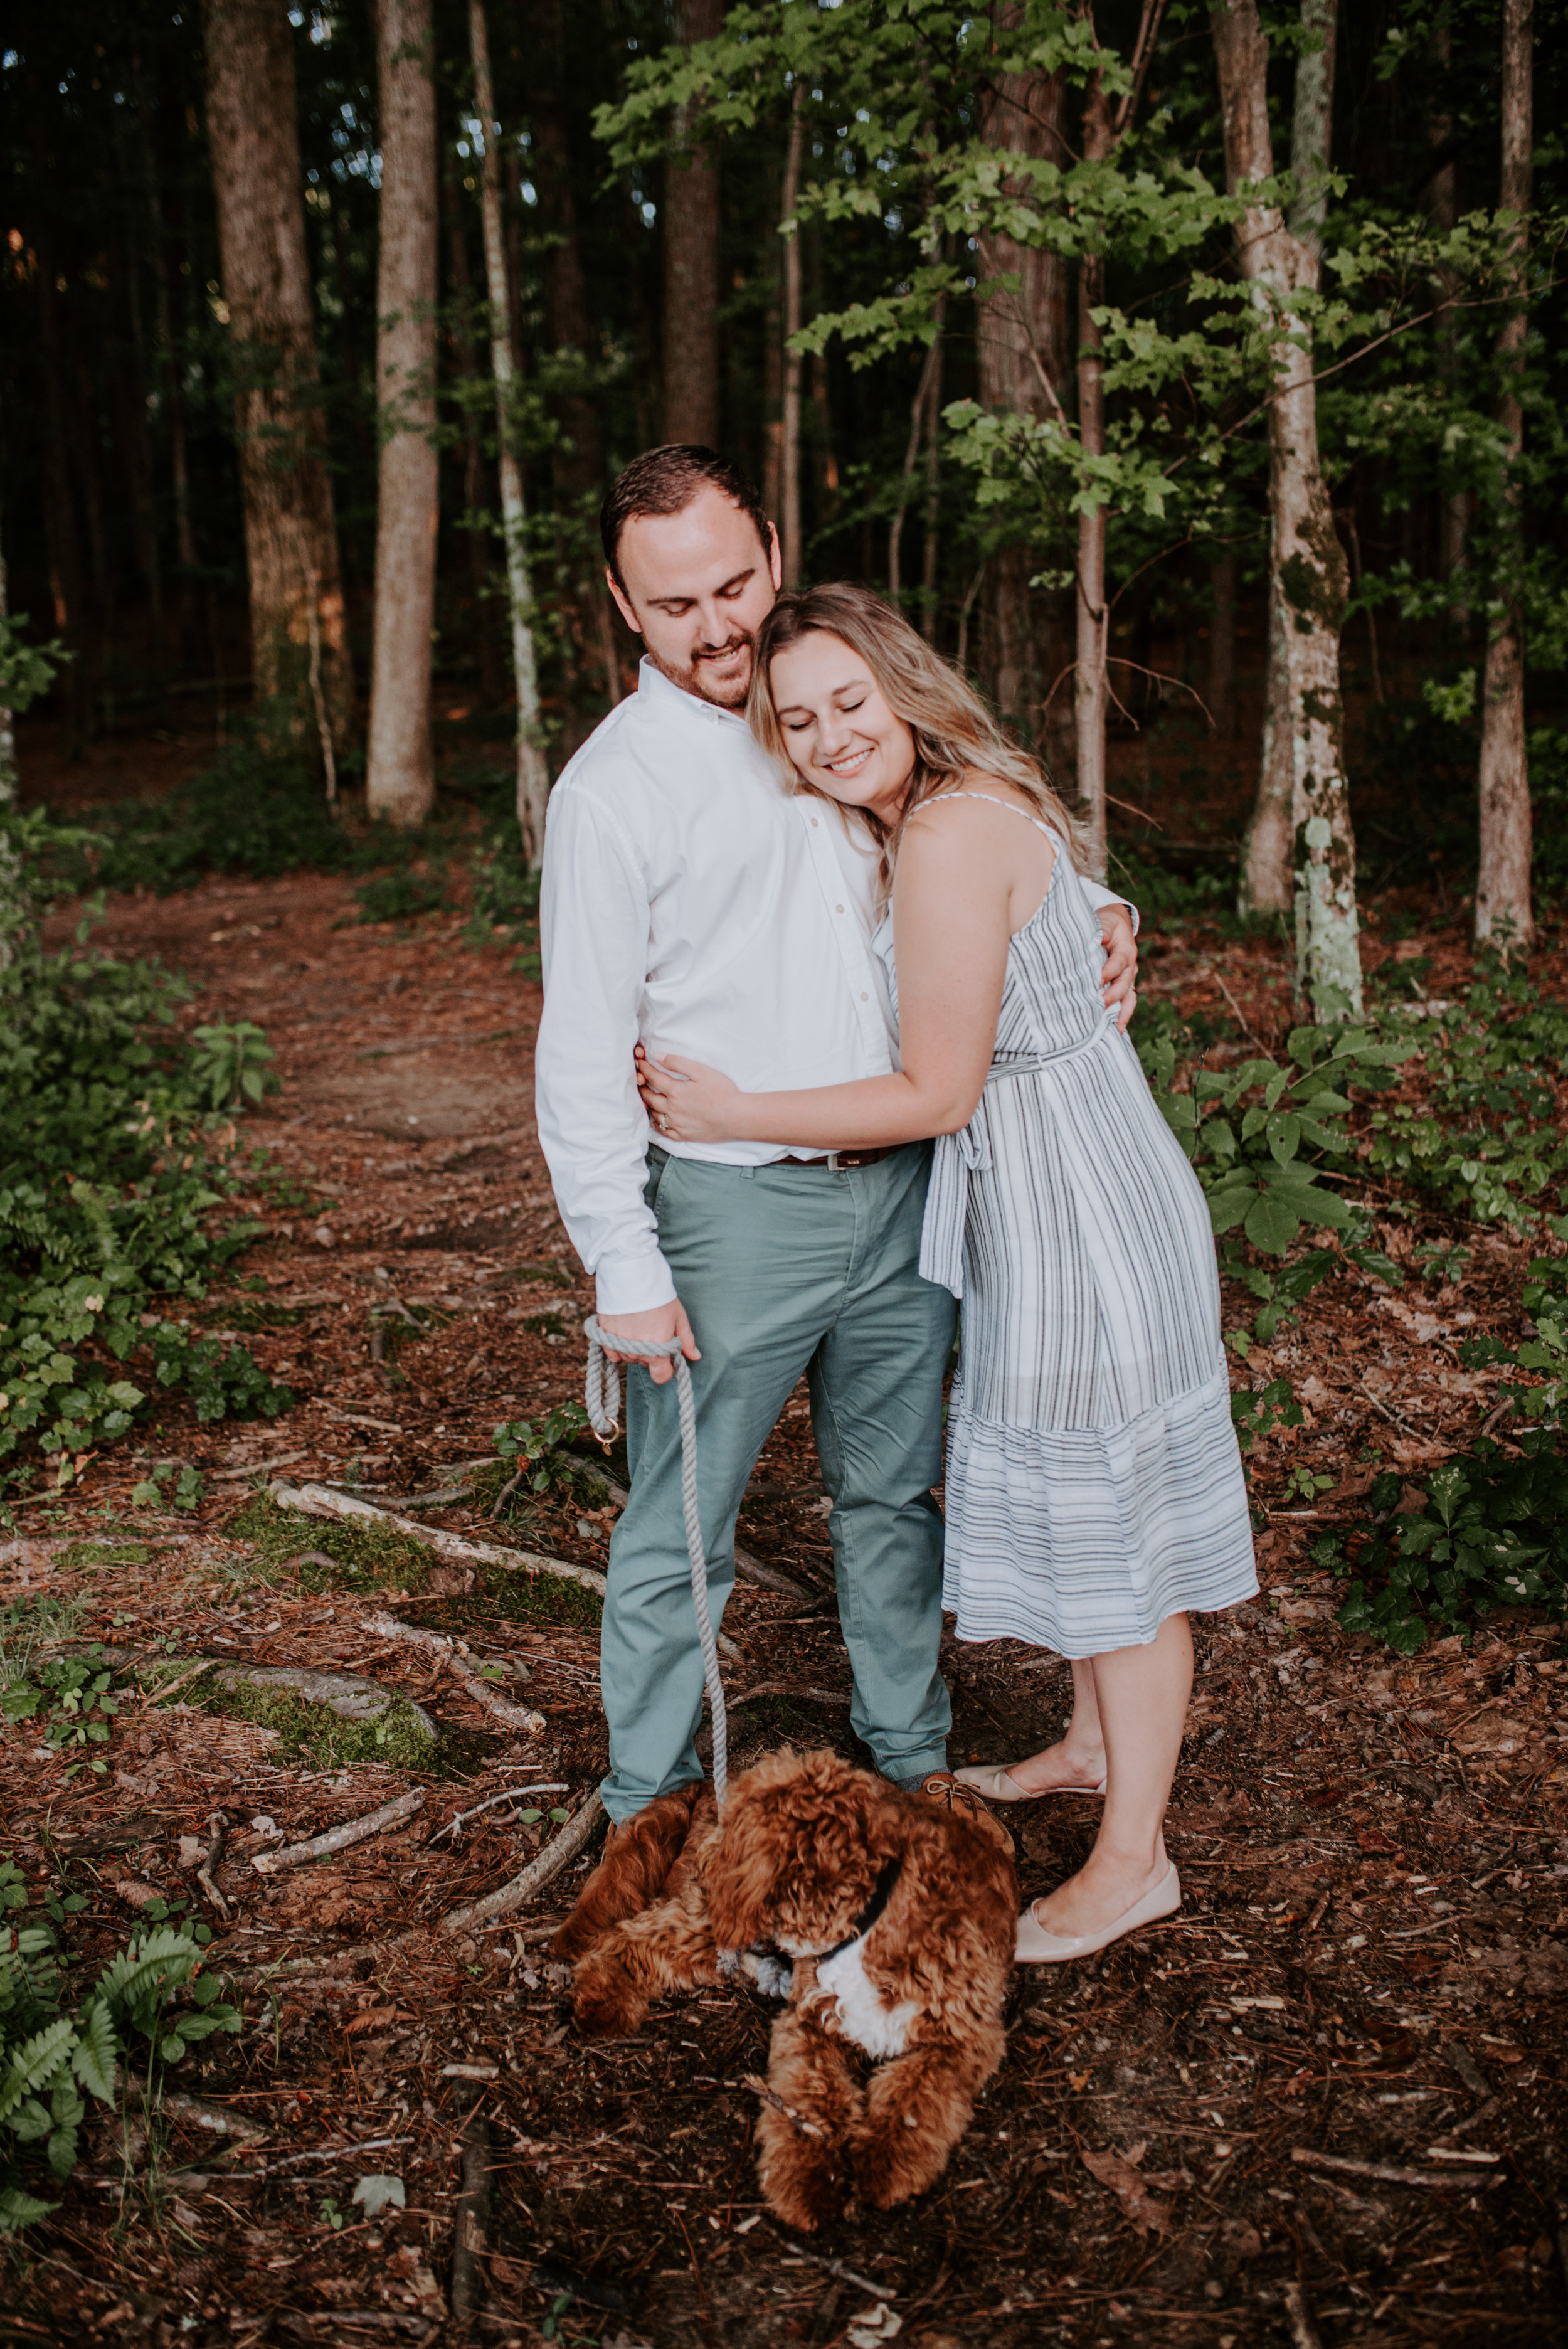 Wake Forest Engagement Photographer - North Carolina Photographer - Raleigh Engagement Photographer - Pet photography North Carolina